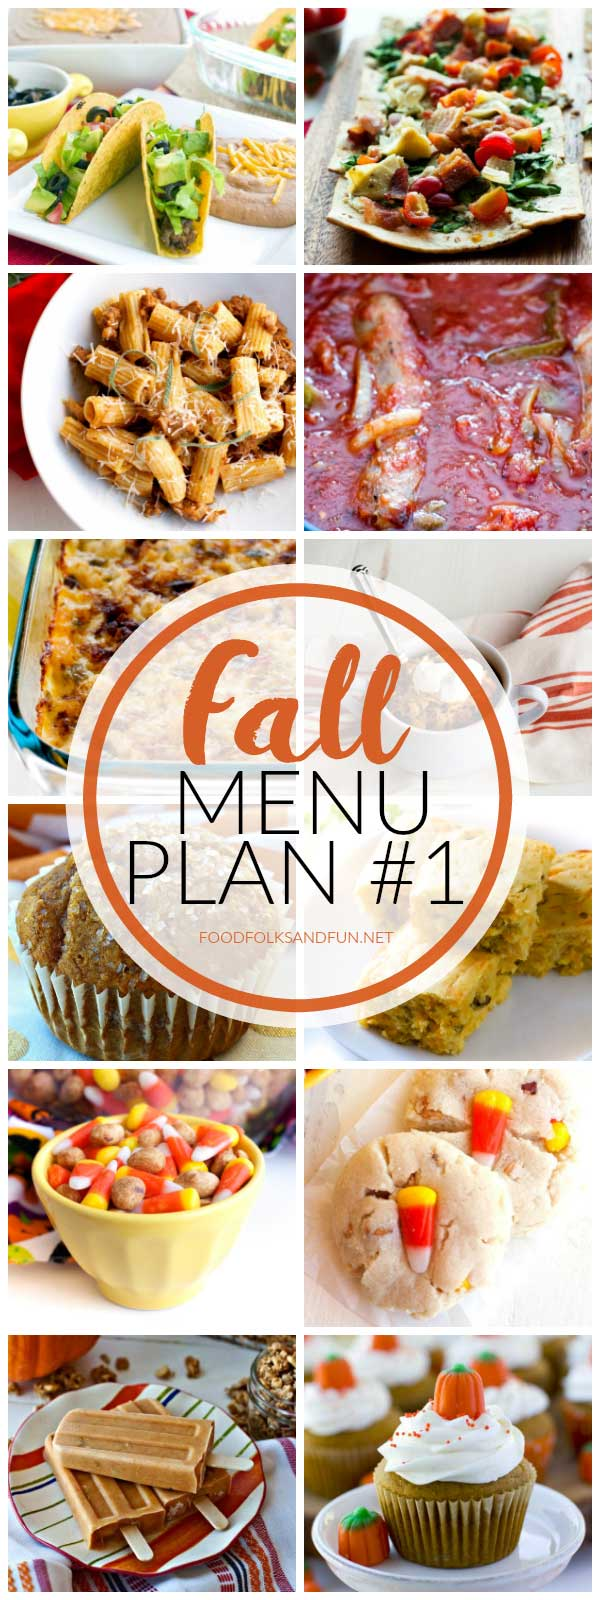 Fall-themed dinner ideas in a collage with text overlay for Pinterest